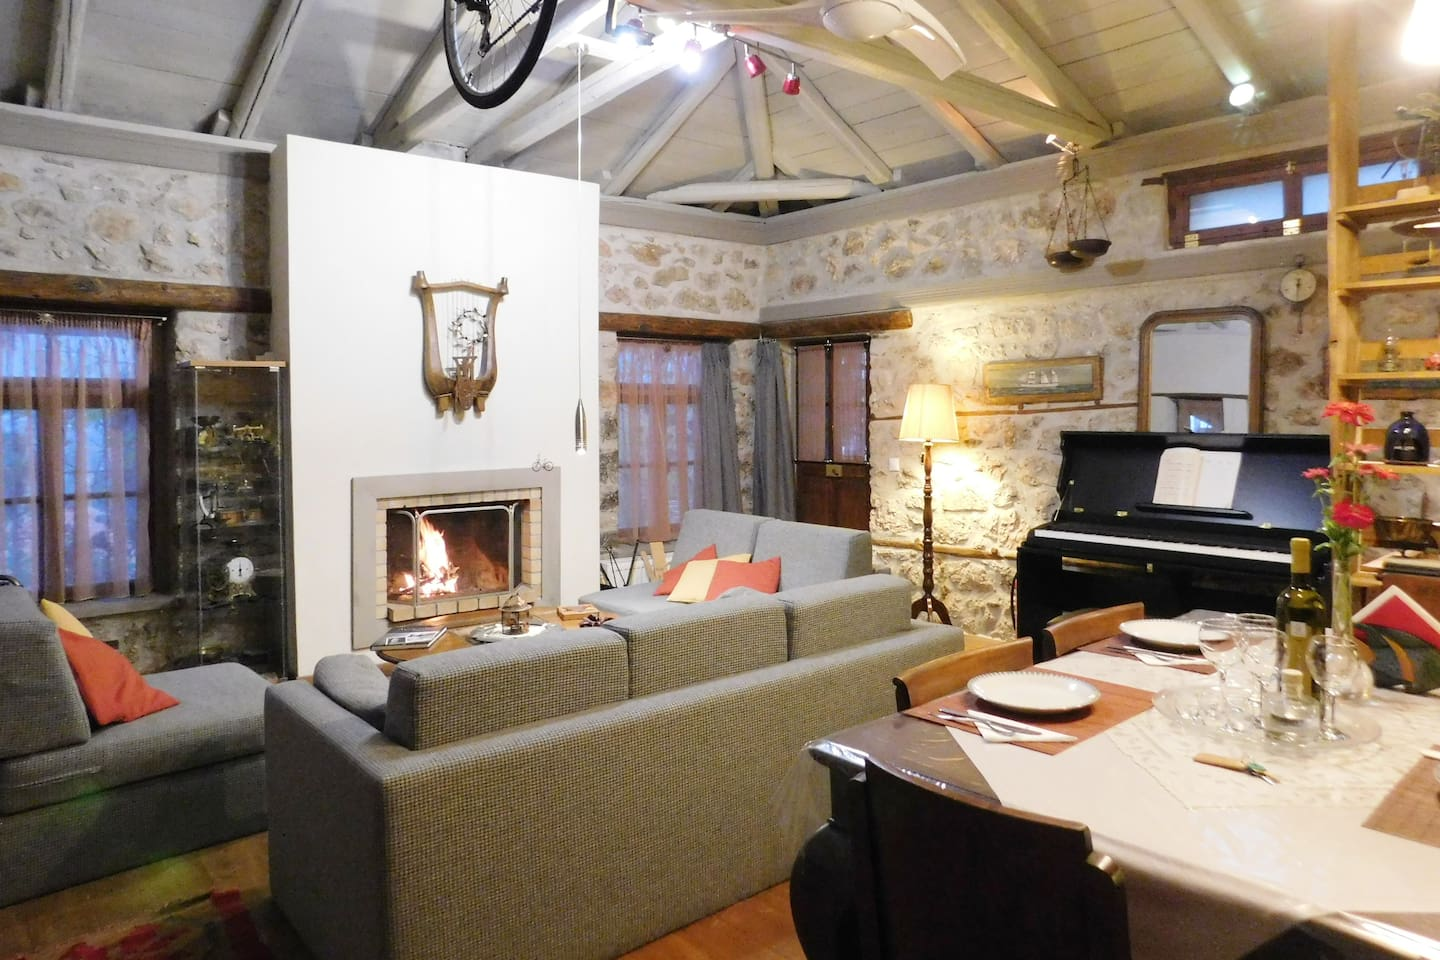 The open living space with the fire place and the piano.